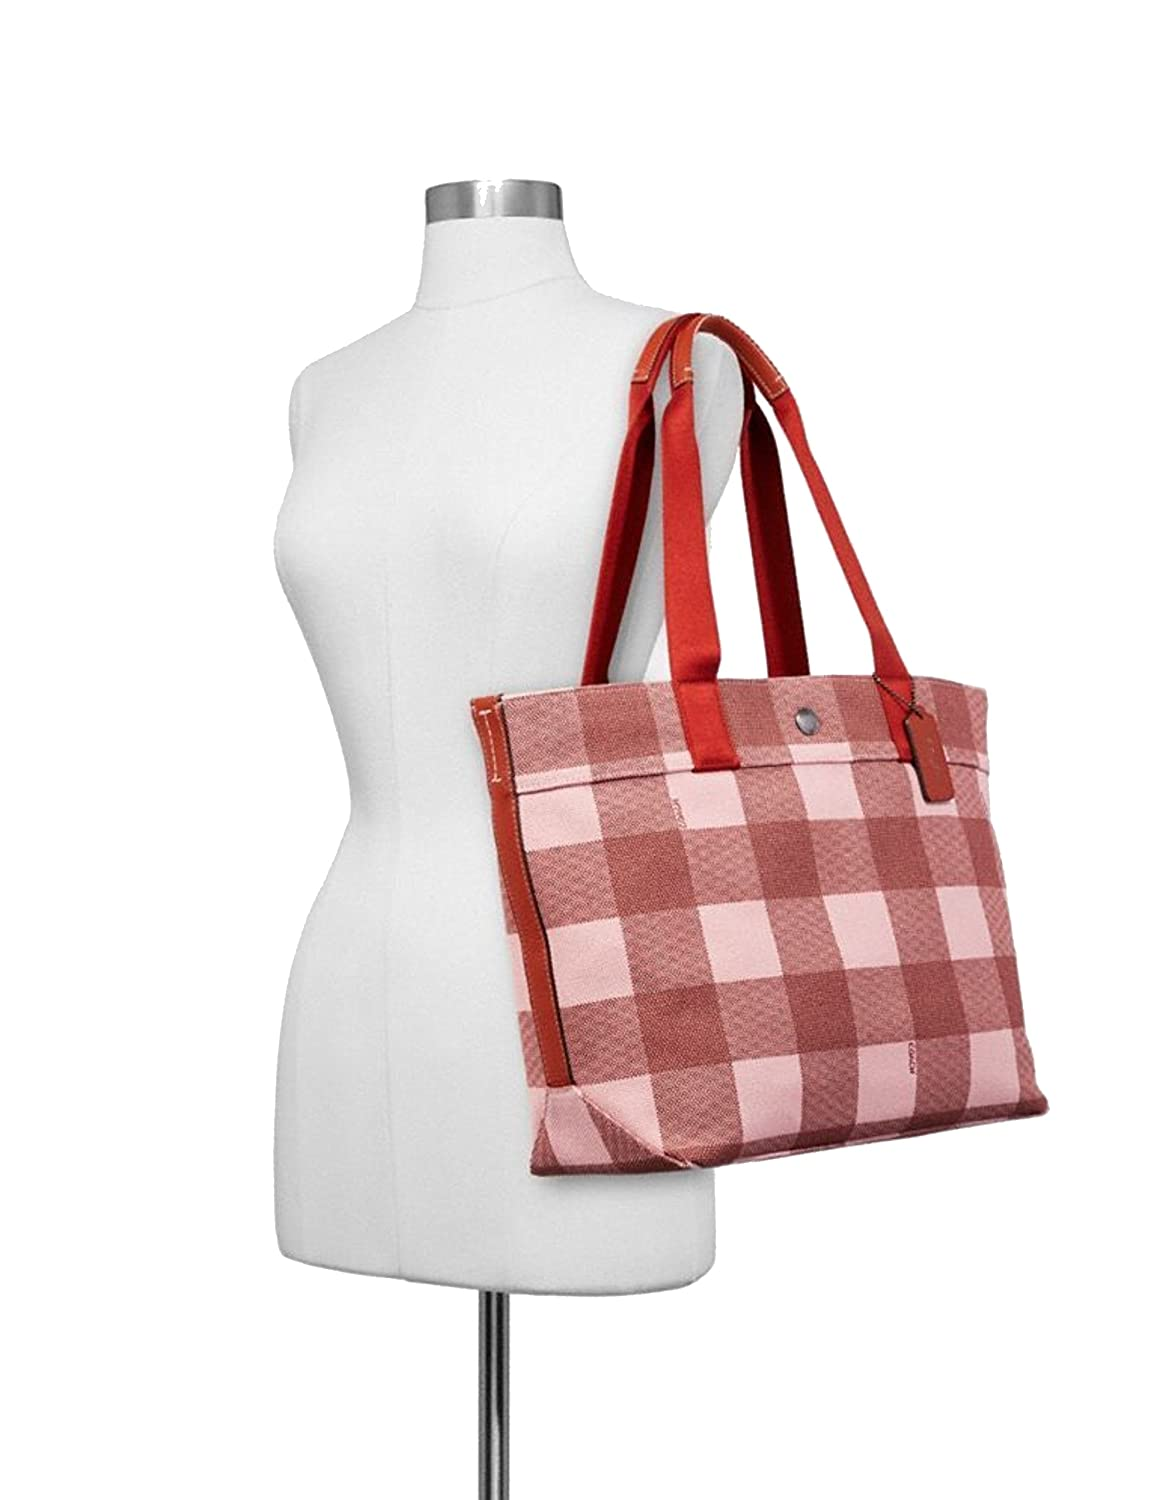 e5f1a19b06 Amazon.com: Coach F25919 Canvas Tote With Buffalo Plaid Print: Shoes